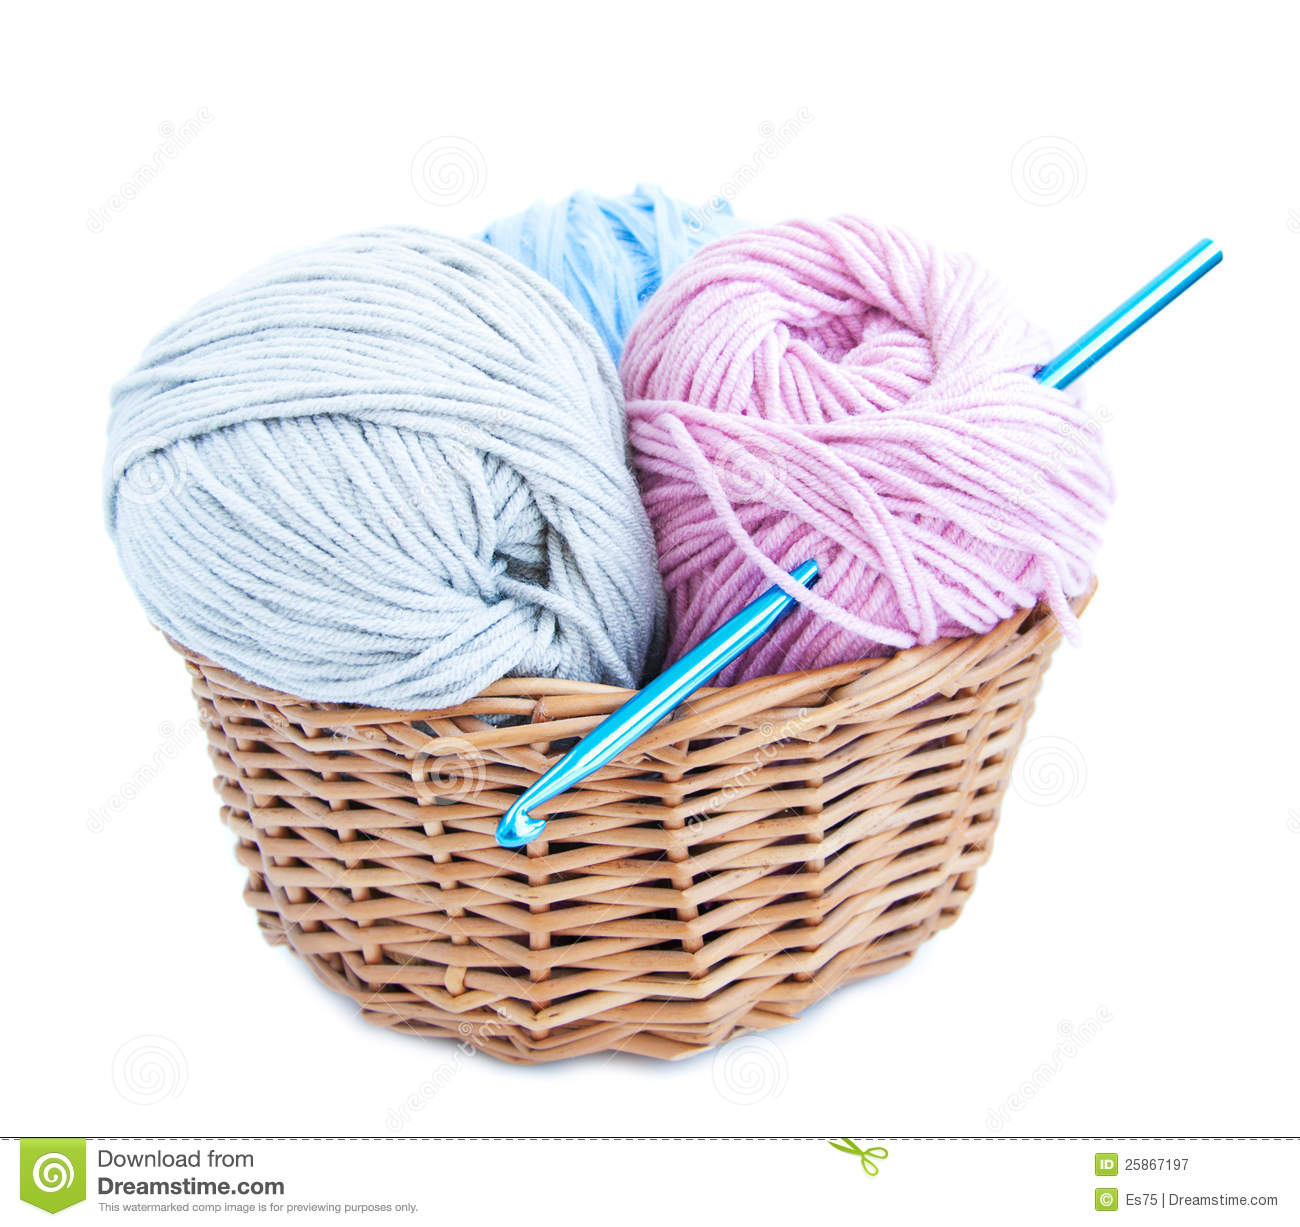 Crocheting Yarn Shop : Crochet Yarn crochet yarn clipart - clipart kid